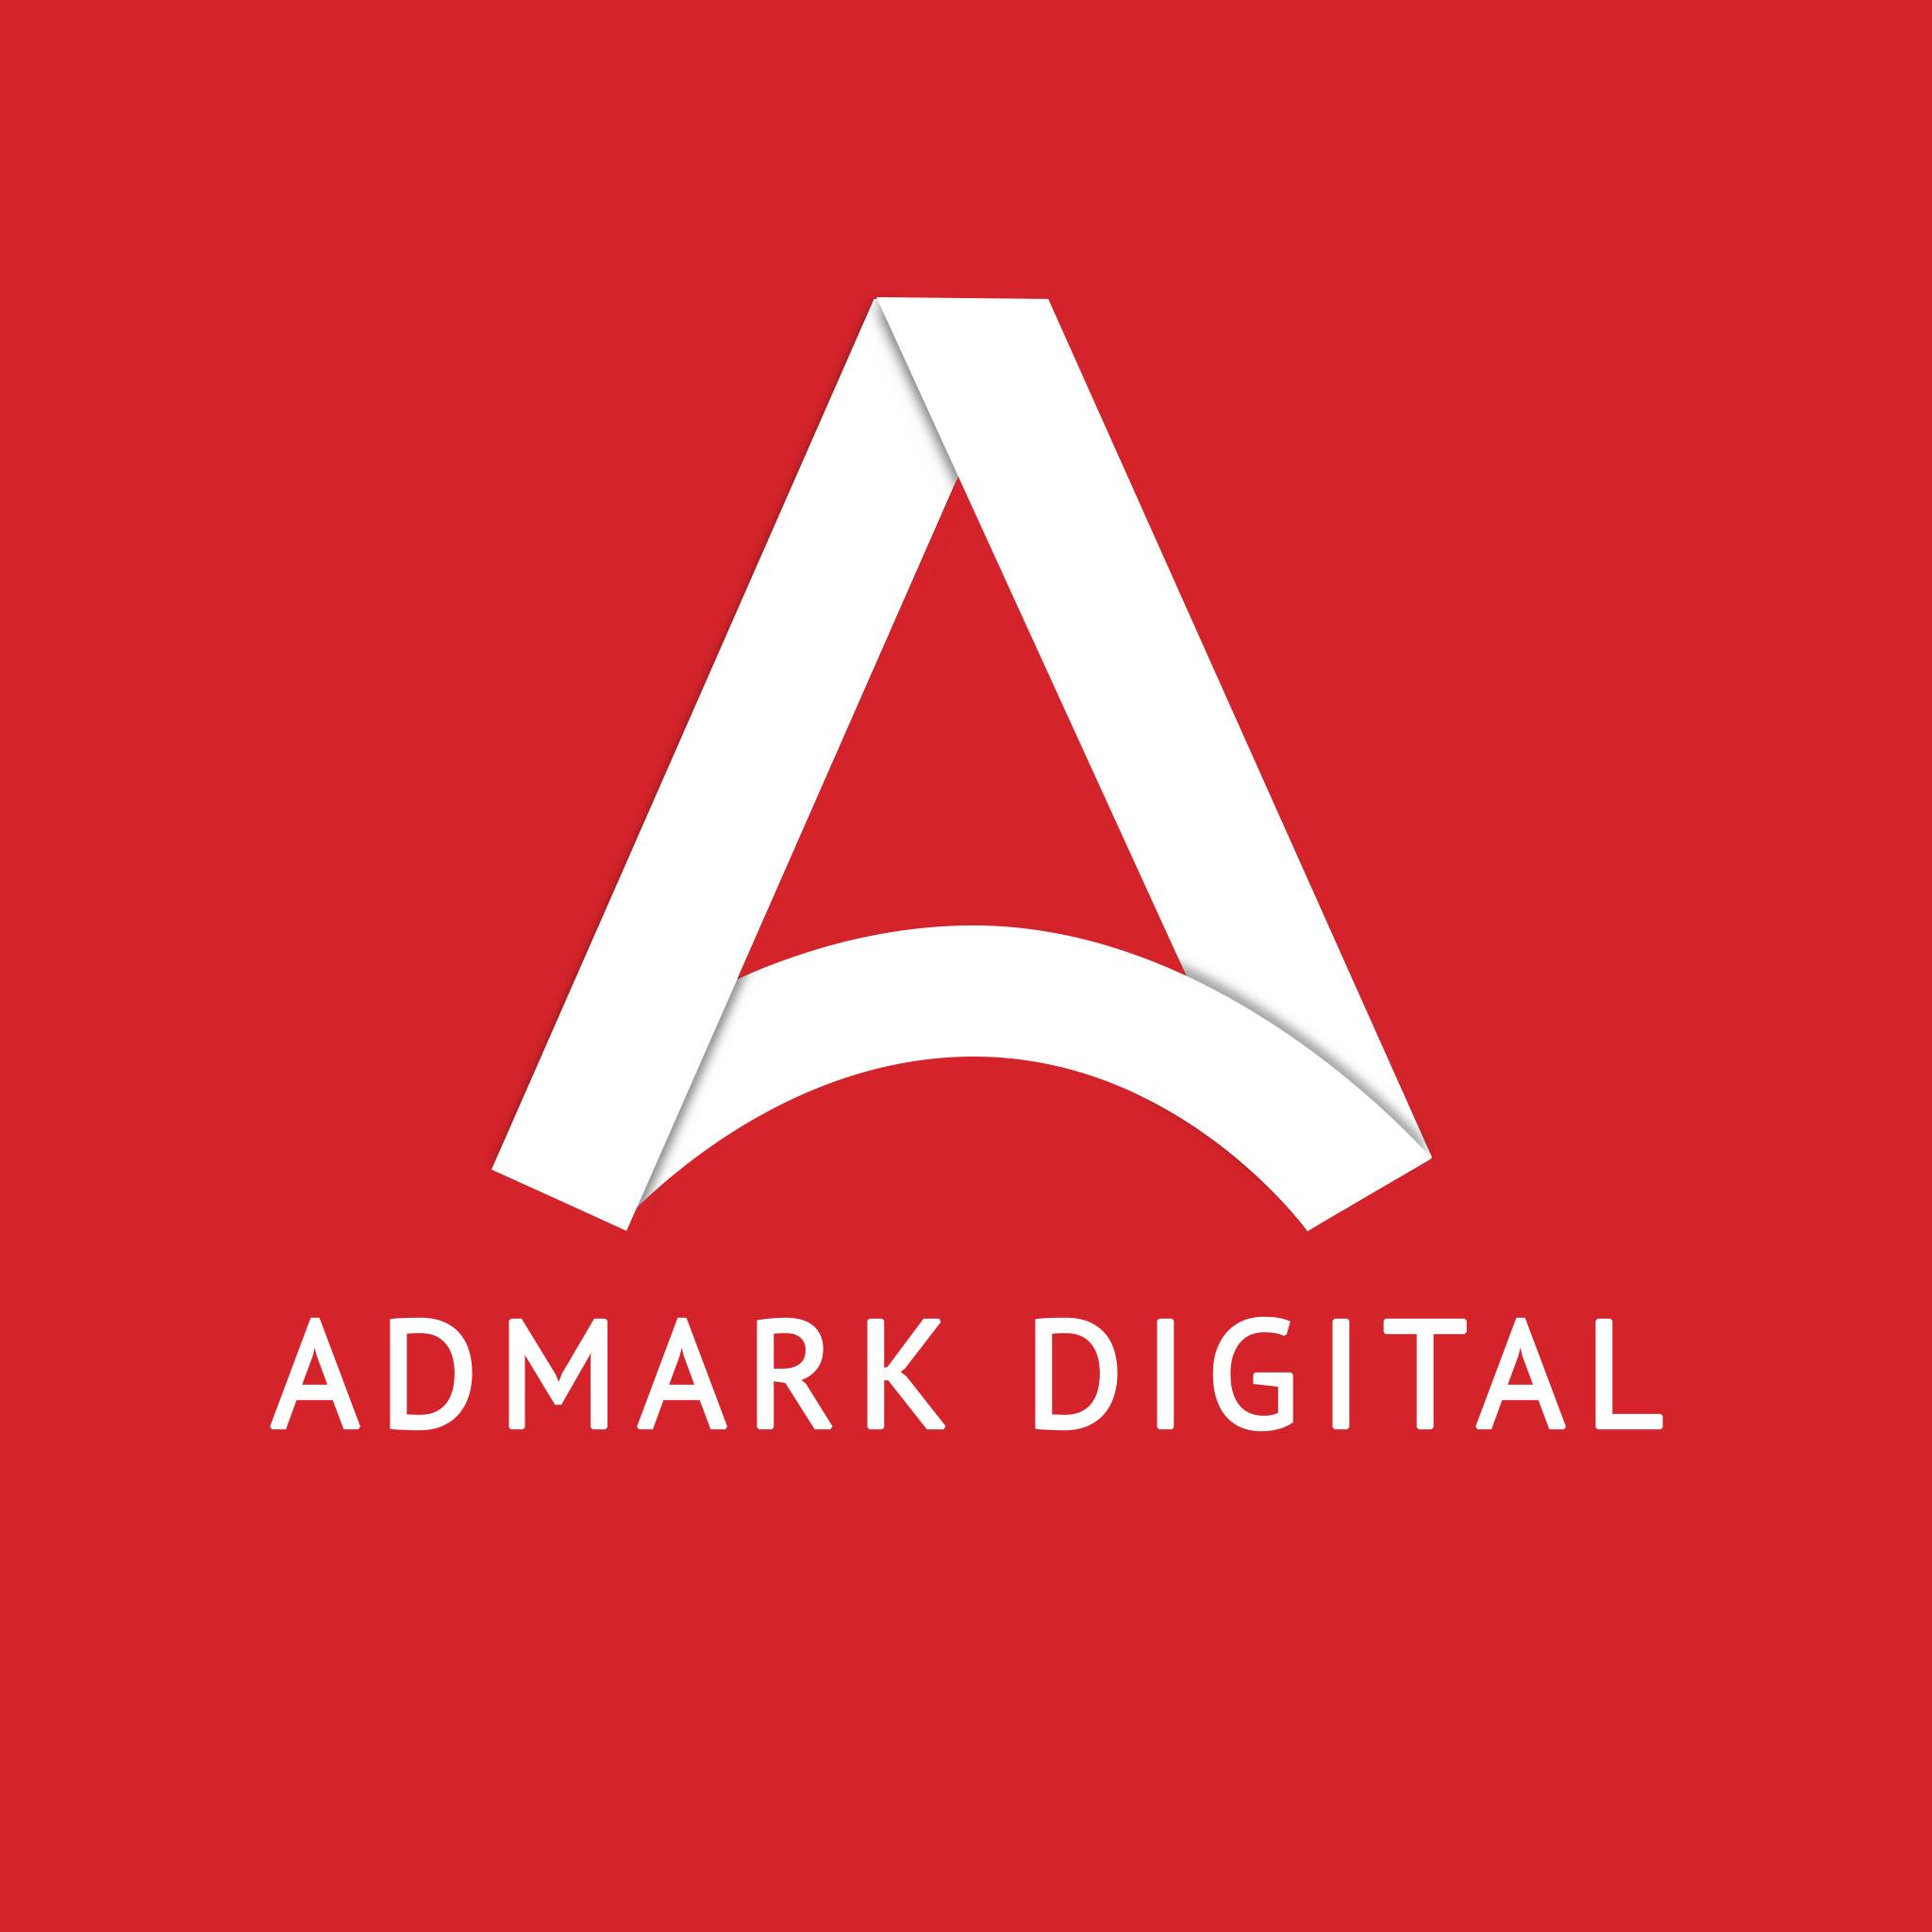 admark digital .jpg